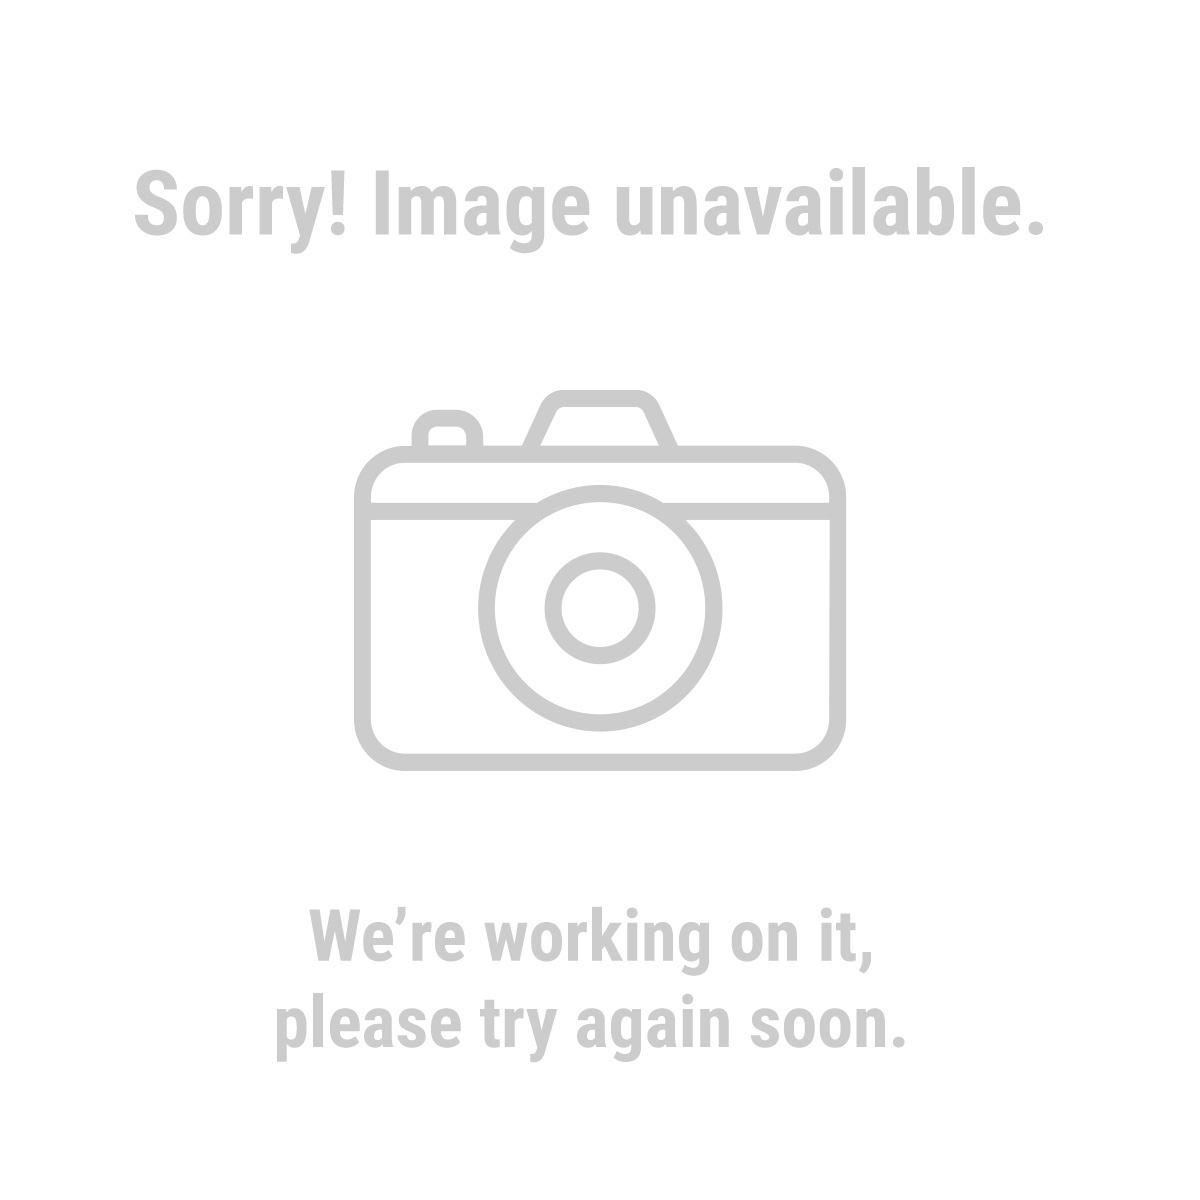 water alarm Water alarm | clas ohlson detect water leaks before it's too late detects.